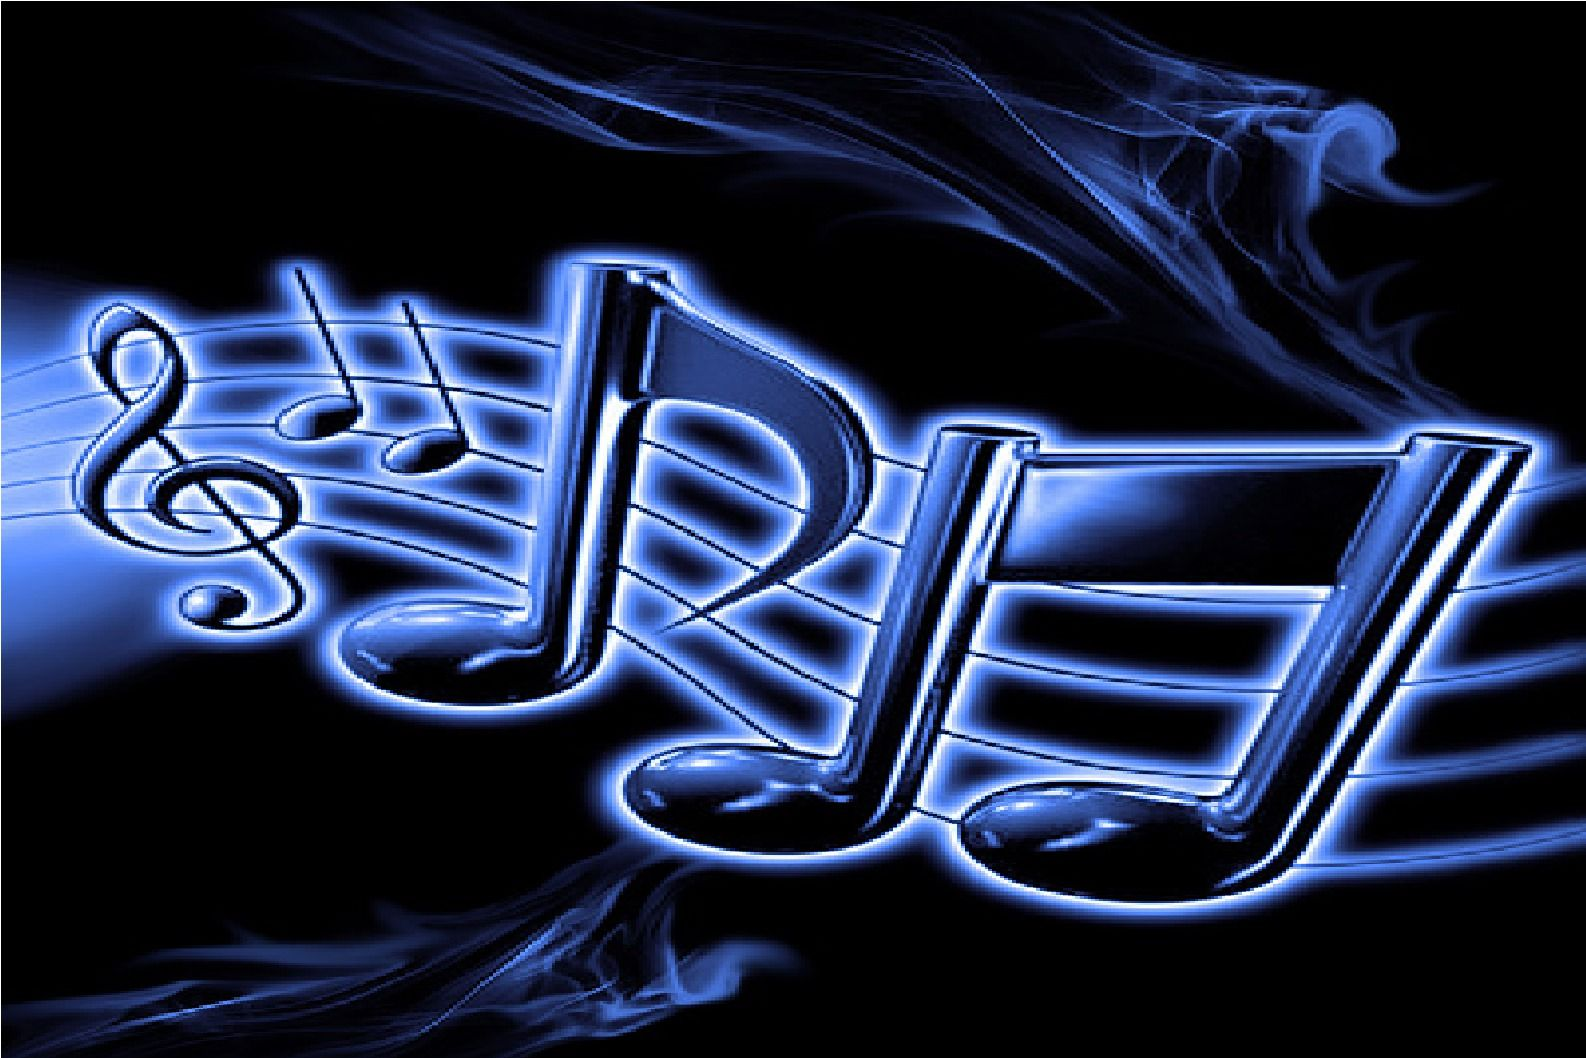 Neon Music Notes Wallpaper: Neon Music Notes Background